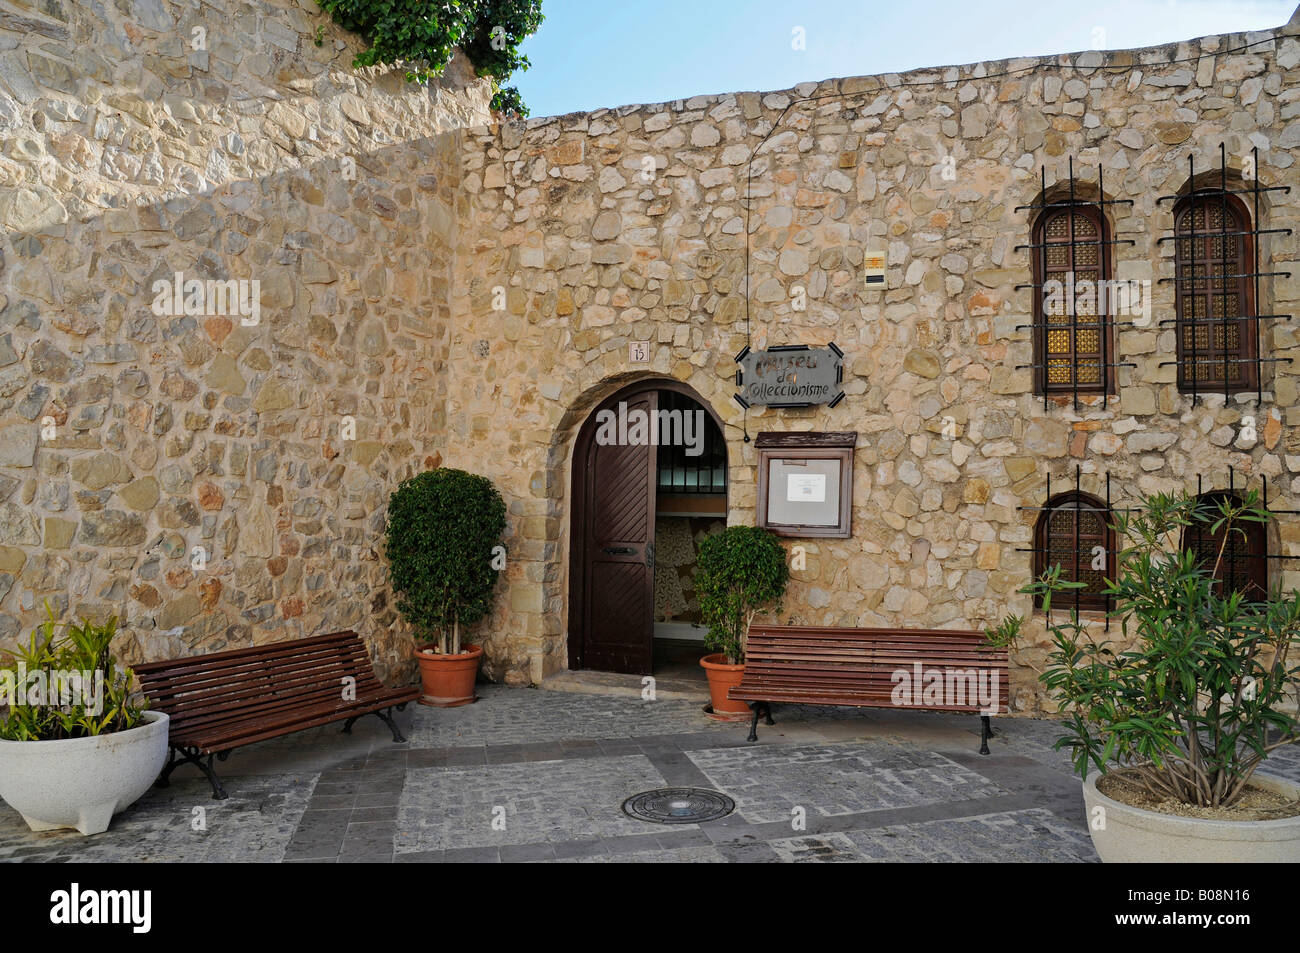 Museum, Collectionnisme, collectible items, old watchtower, Torrero de la Peca, Calpe, Alicante, Costa Blanca, Spain - Stock Image